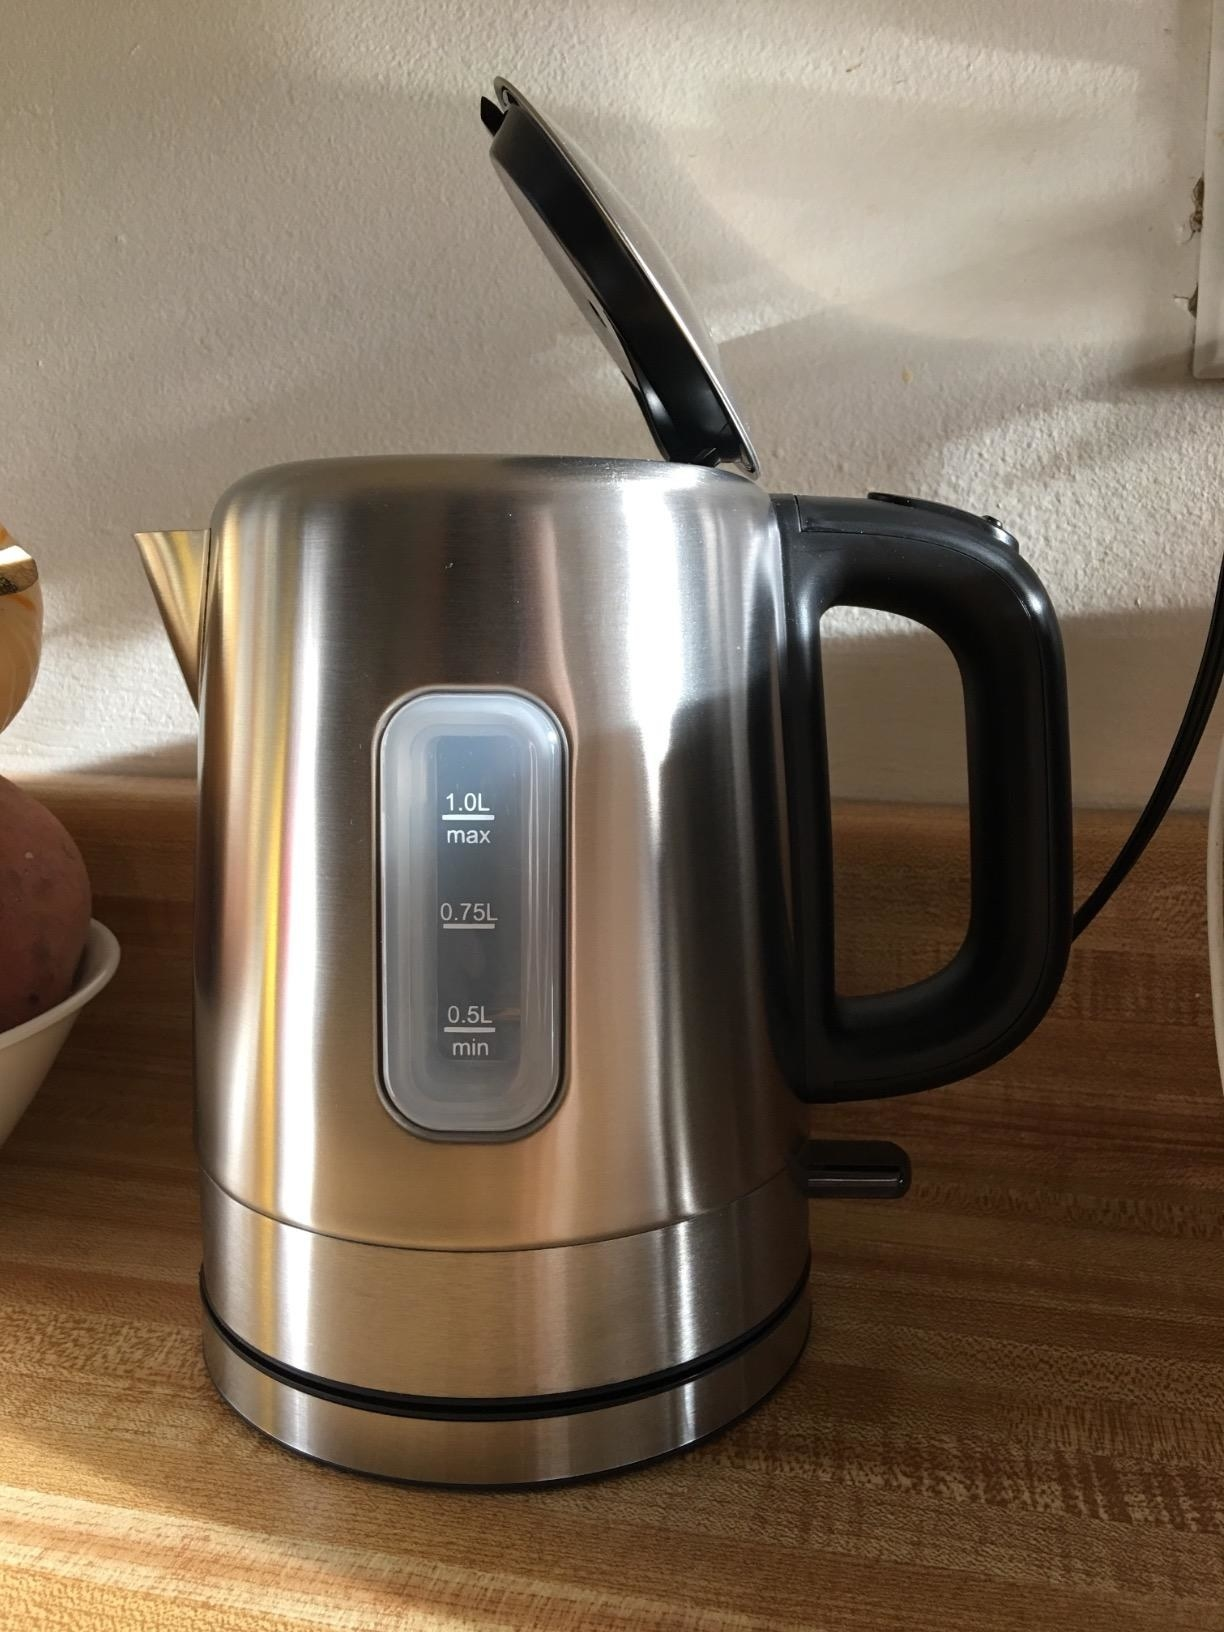 A metallic electric kettle with a black handle and measurements on the side plastic window